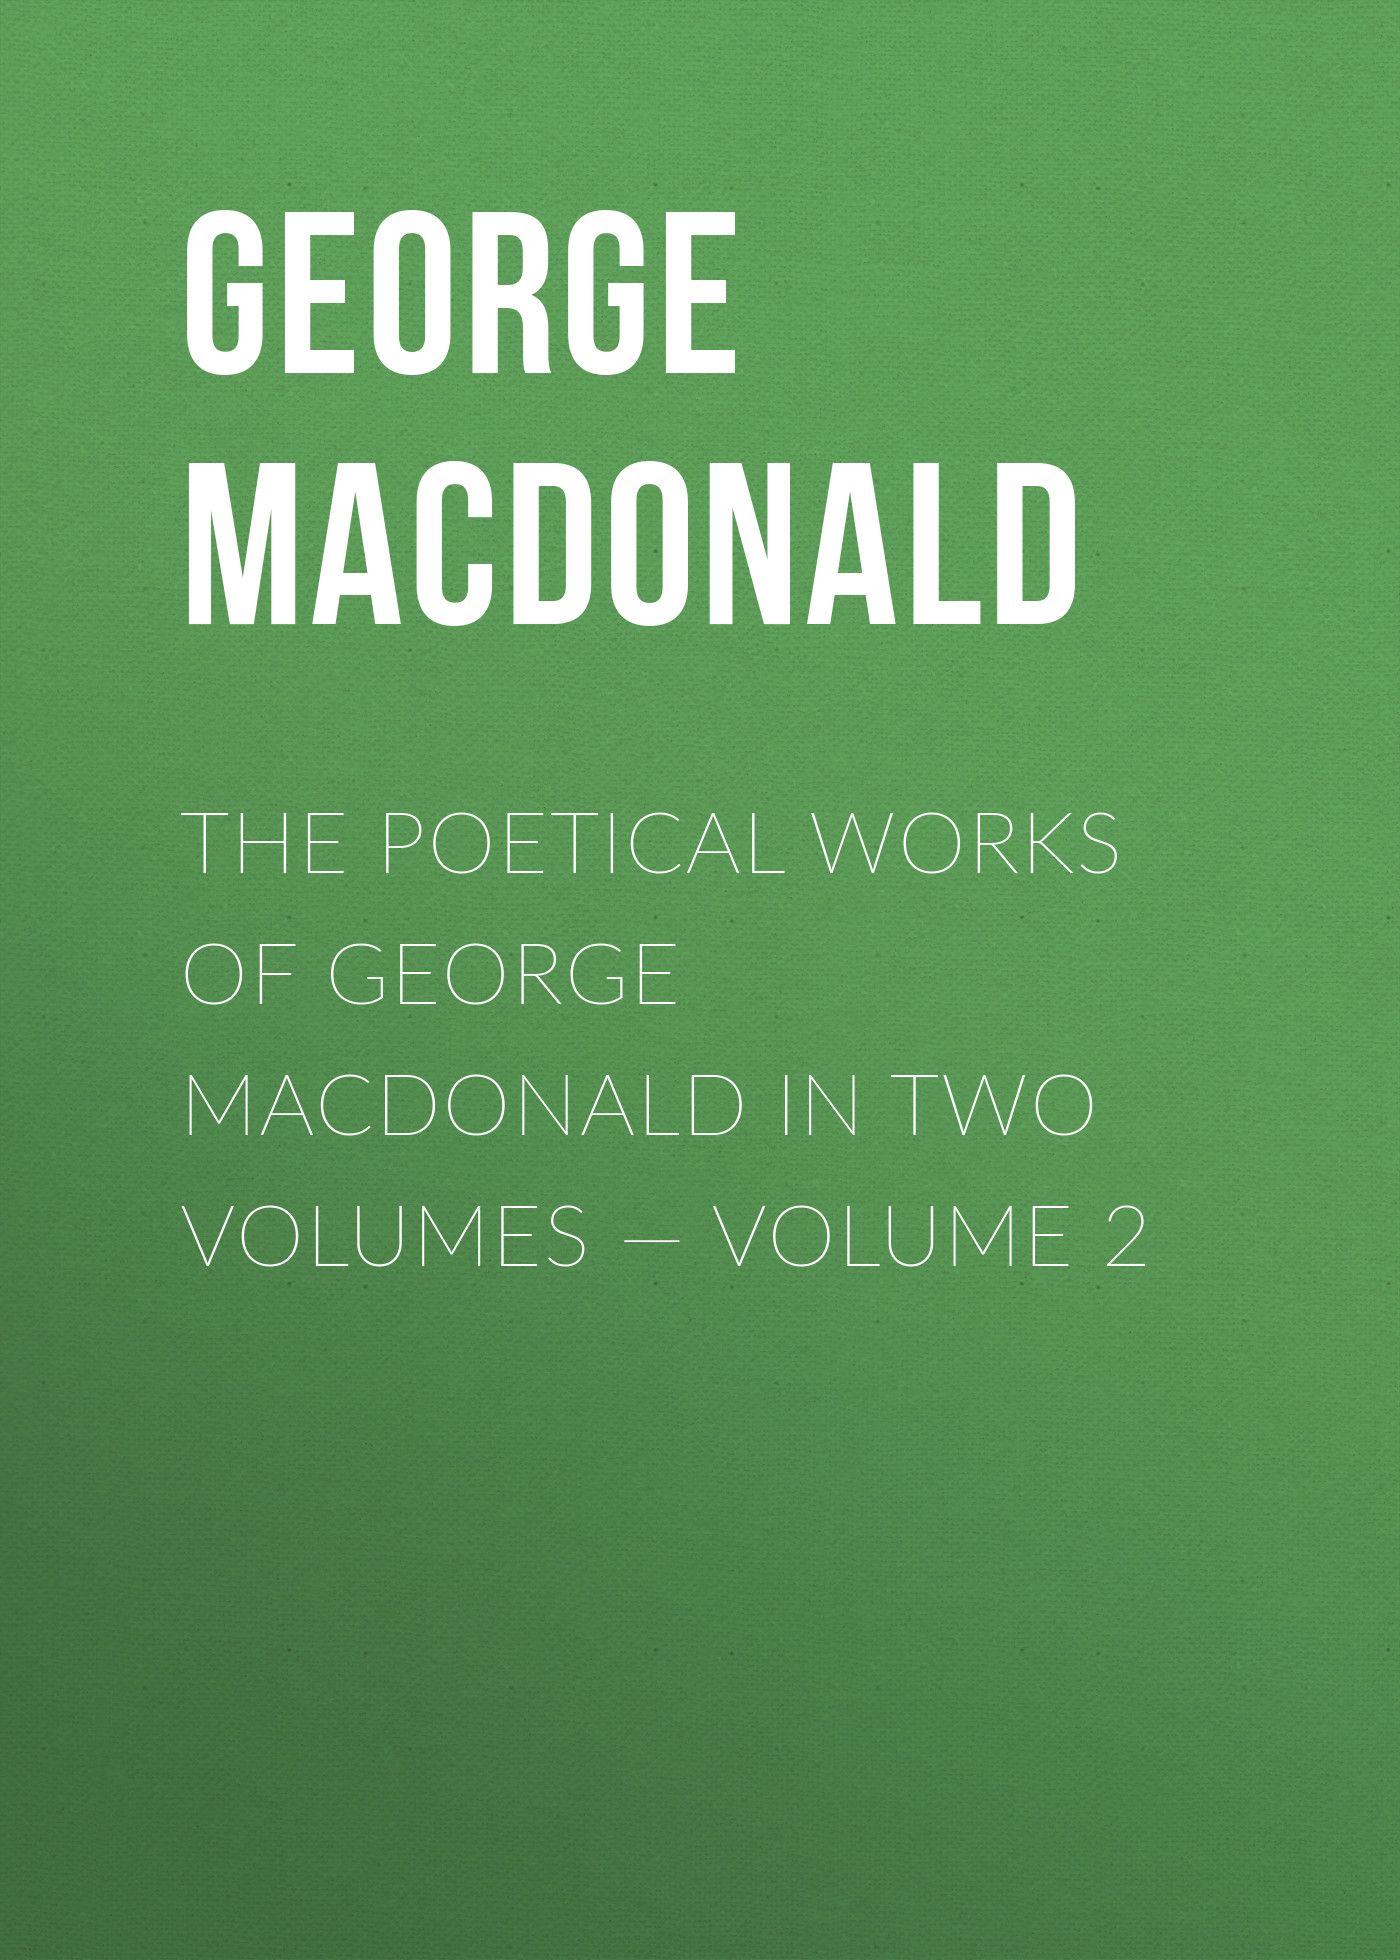 George MacDonald The poetical works of George MacDonald in two volumes — Volume 2 george bull the works of george bull d d lord bishop of st david s 2